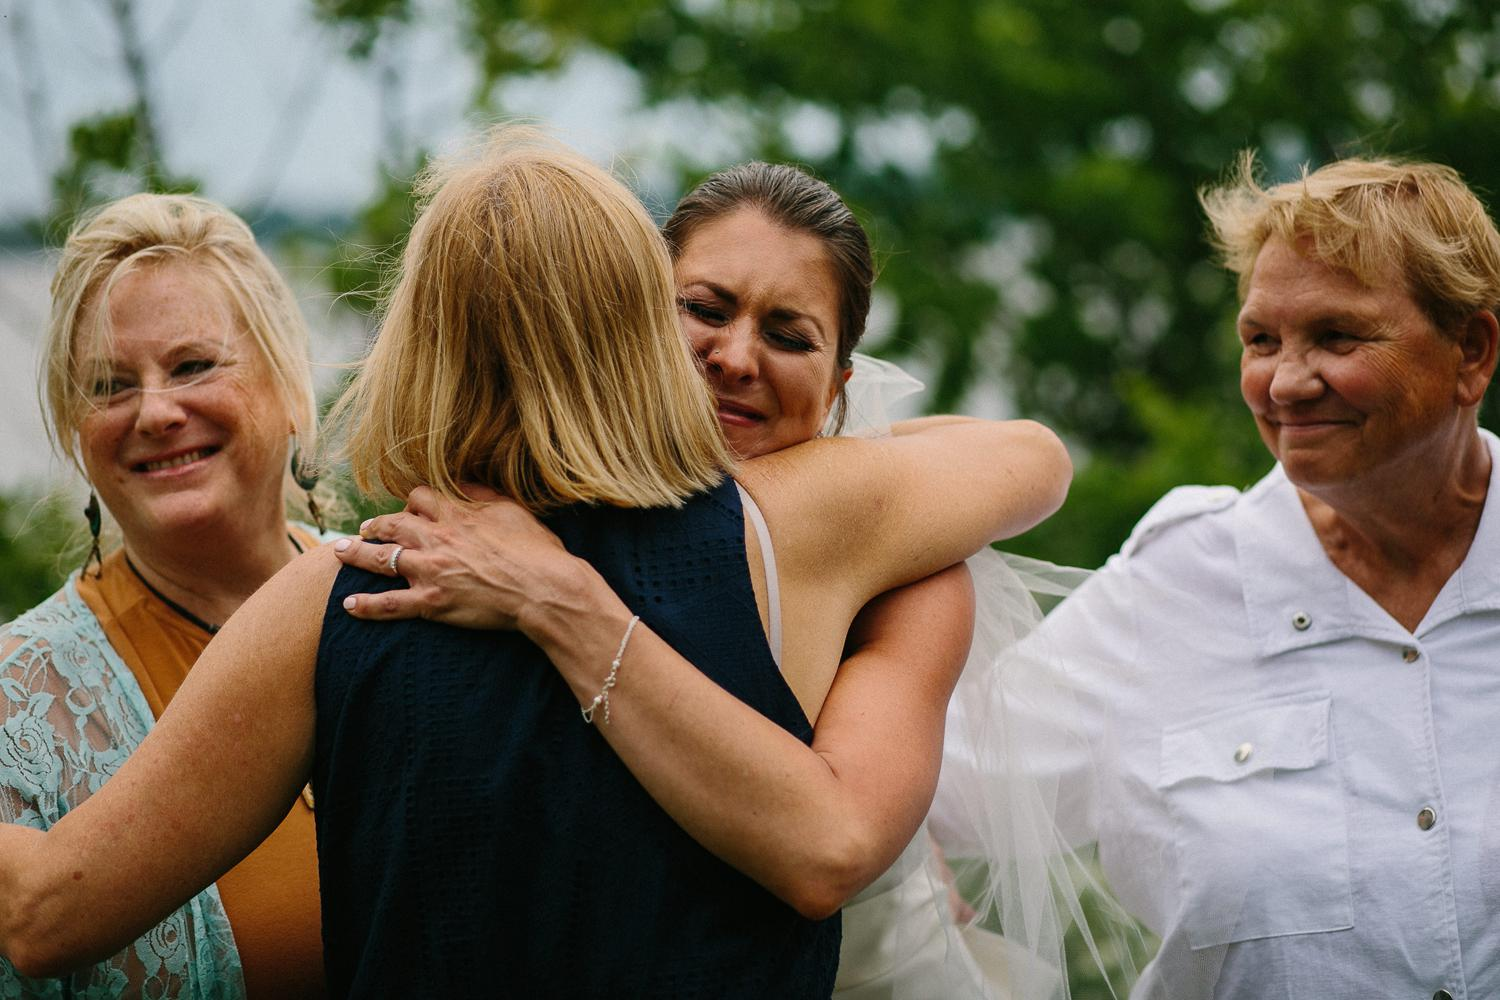 ottawa river small intimate wedding-135.jpg